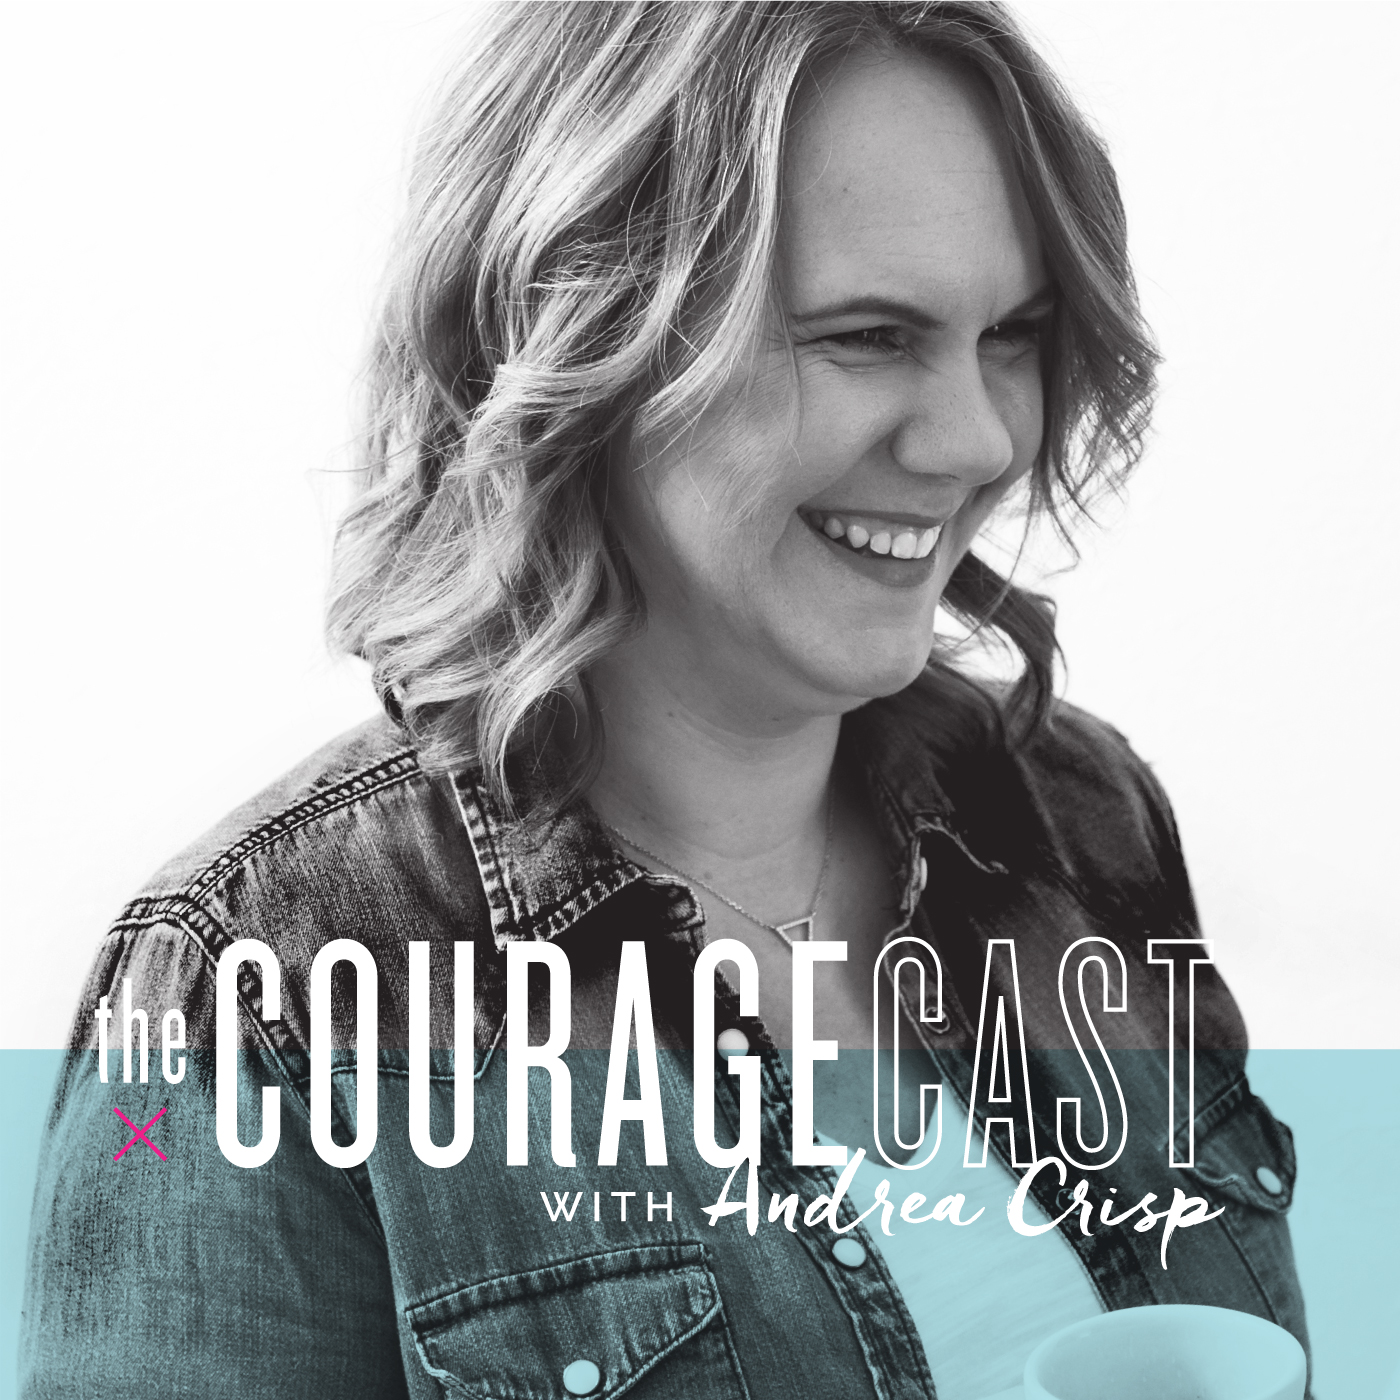 The CourageCastHosted by Andrea Crisp - Andrea is a life coach, and her podcast is all about empowering women to live bravely and be courageous. She interviews amazing women with inspiring stories!